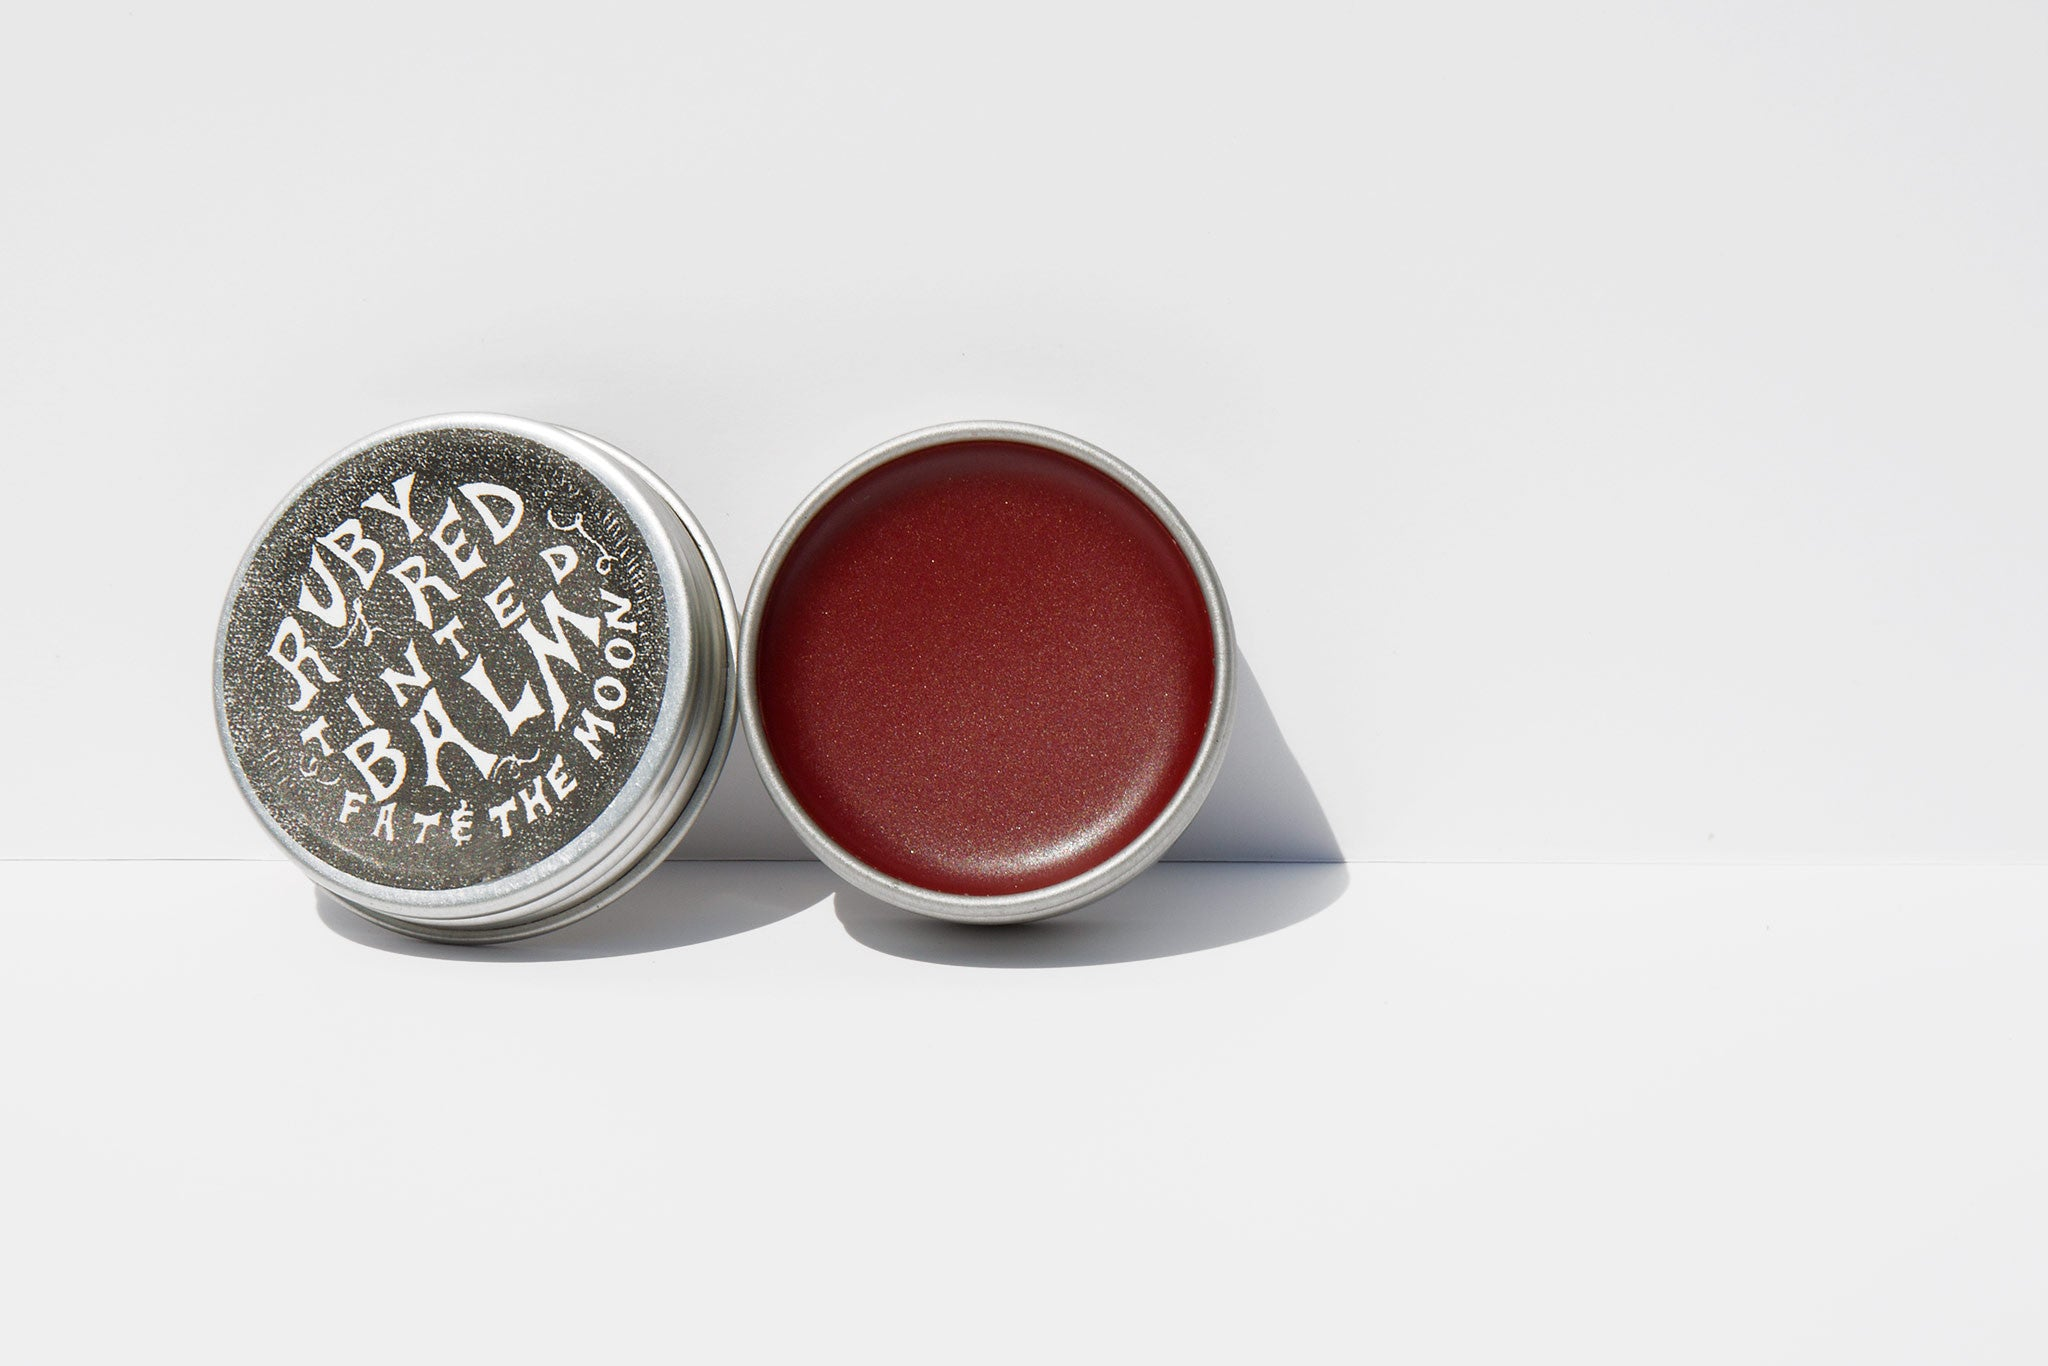 Fat and the Moon Ruby Red Tinted Balm